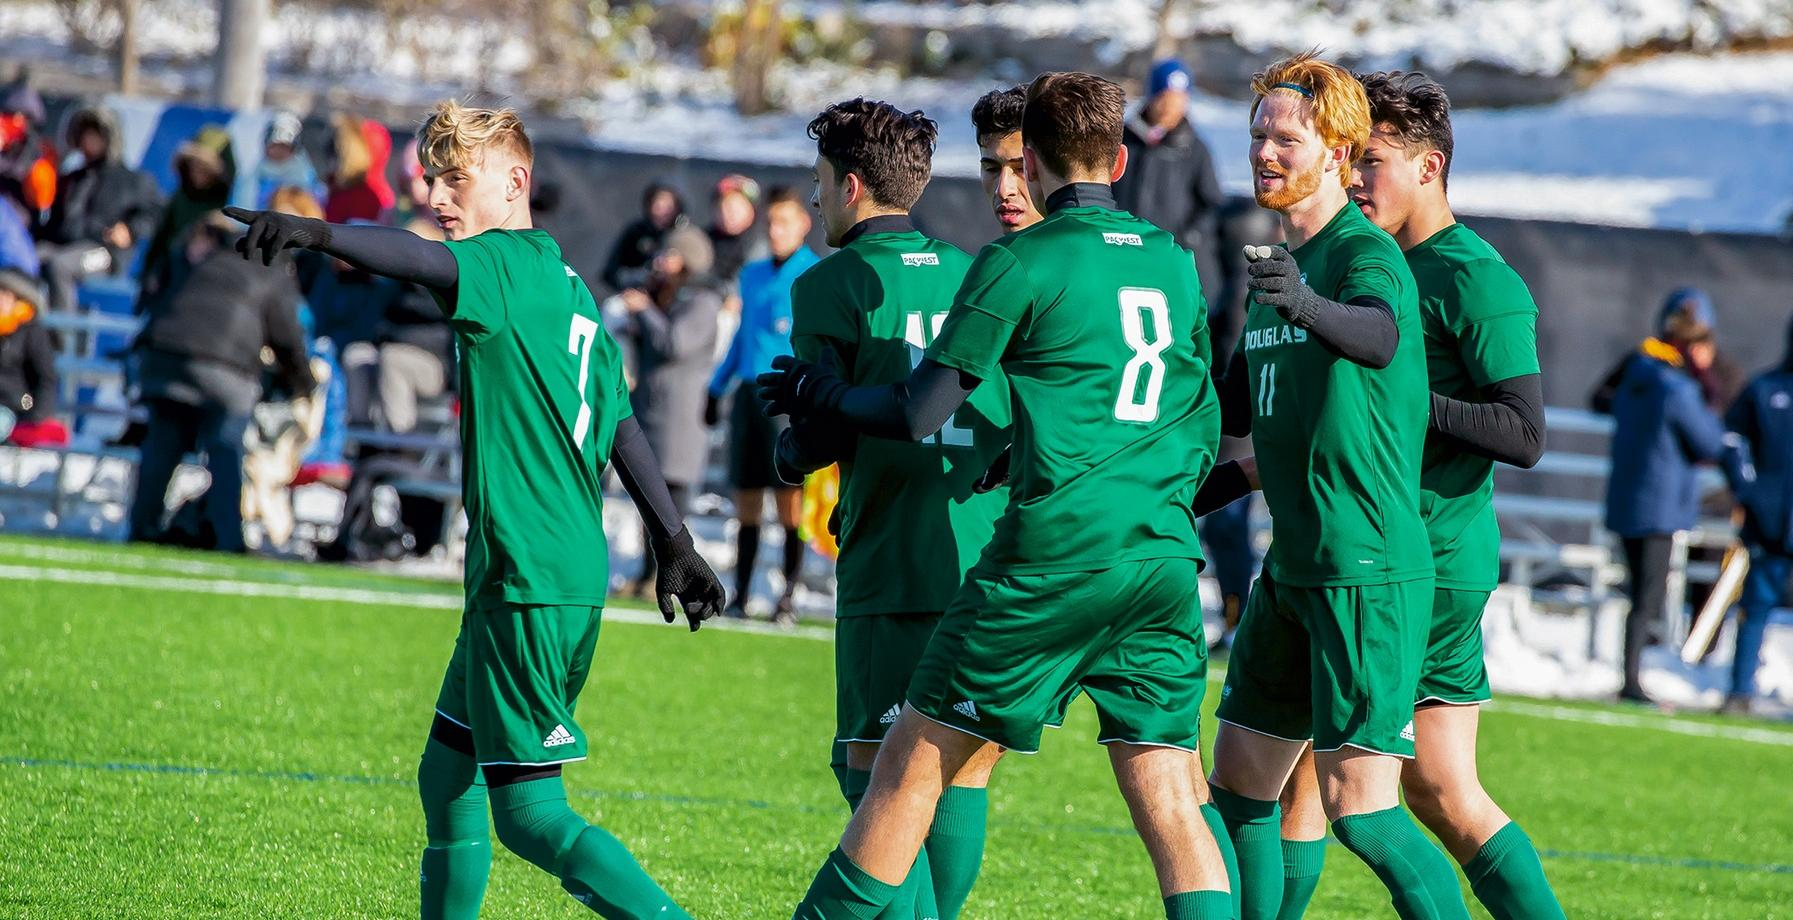 2019-20 CCAA Men's Soccer National Championship